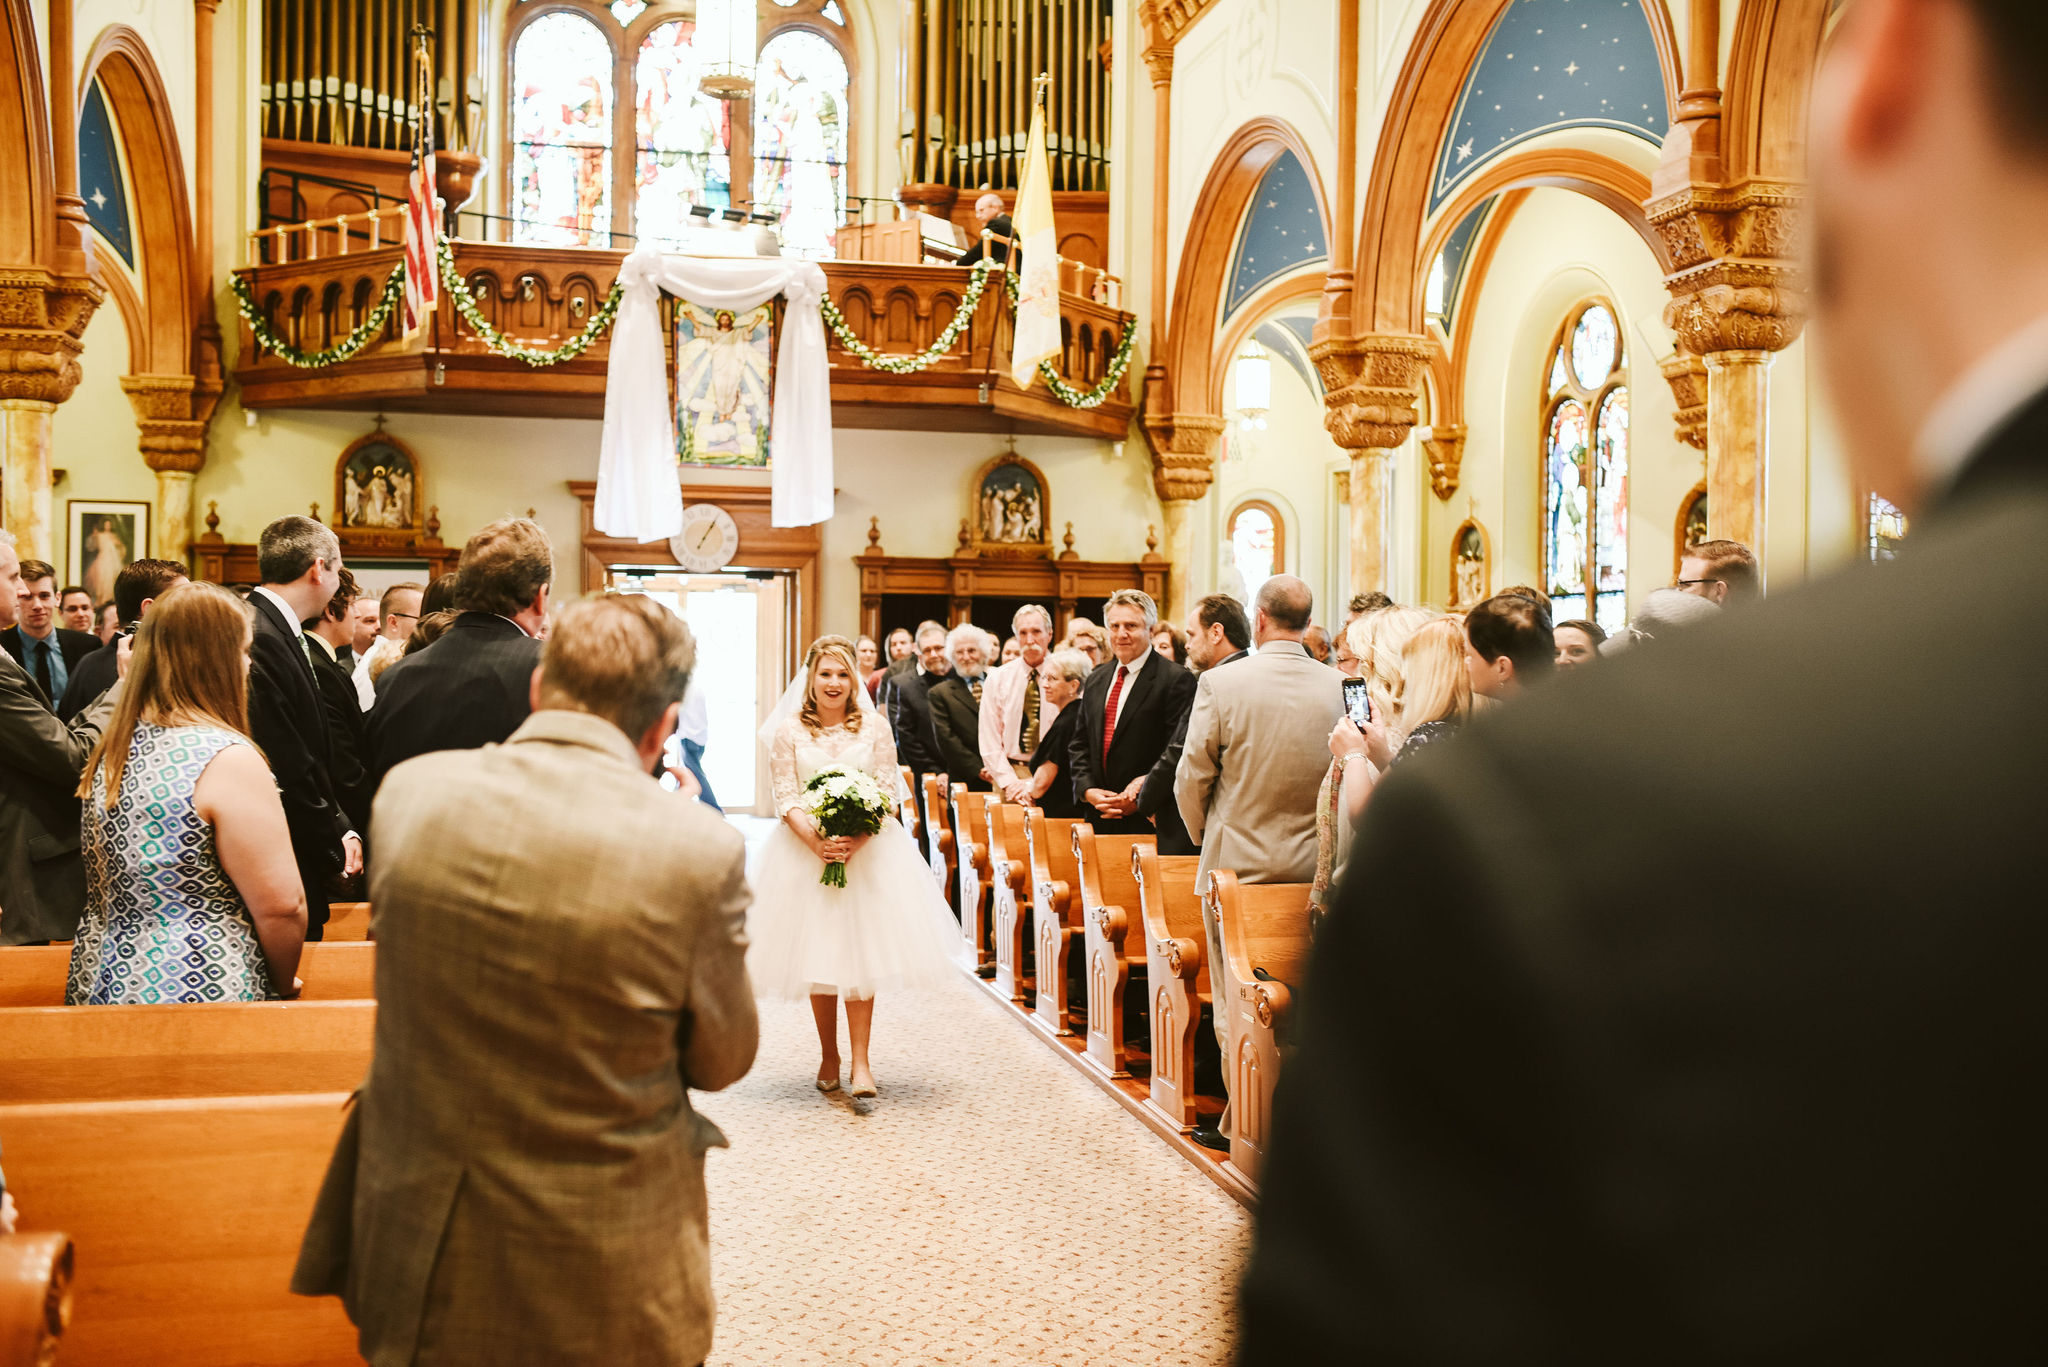 Baltimore, Church Wedding, Maryland Wedding Photographer, Vintage, Classic, 50s Style, Tea-length Wedding Dress, Bride Walking Down Aisle